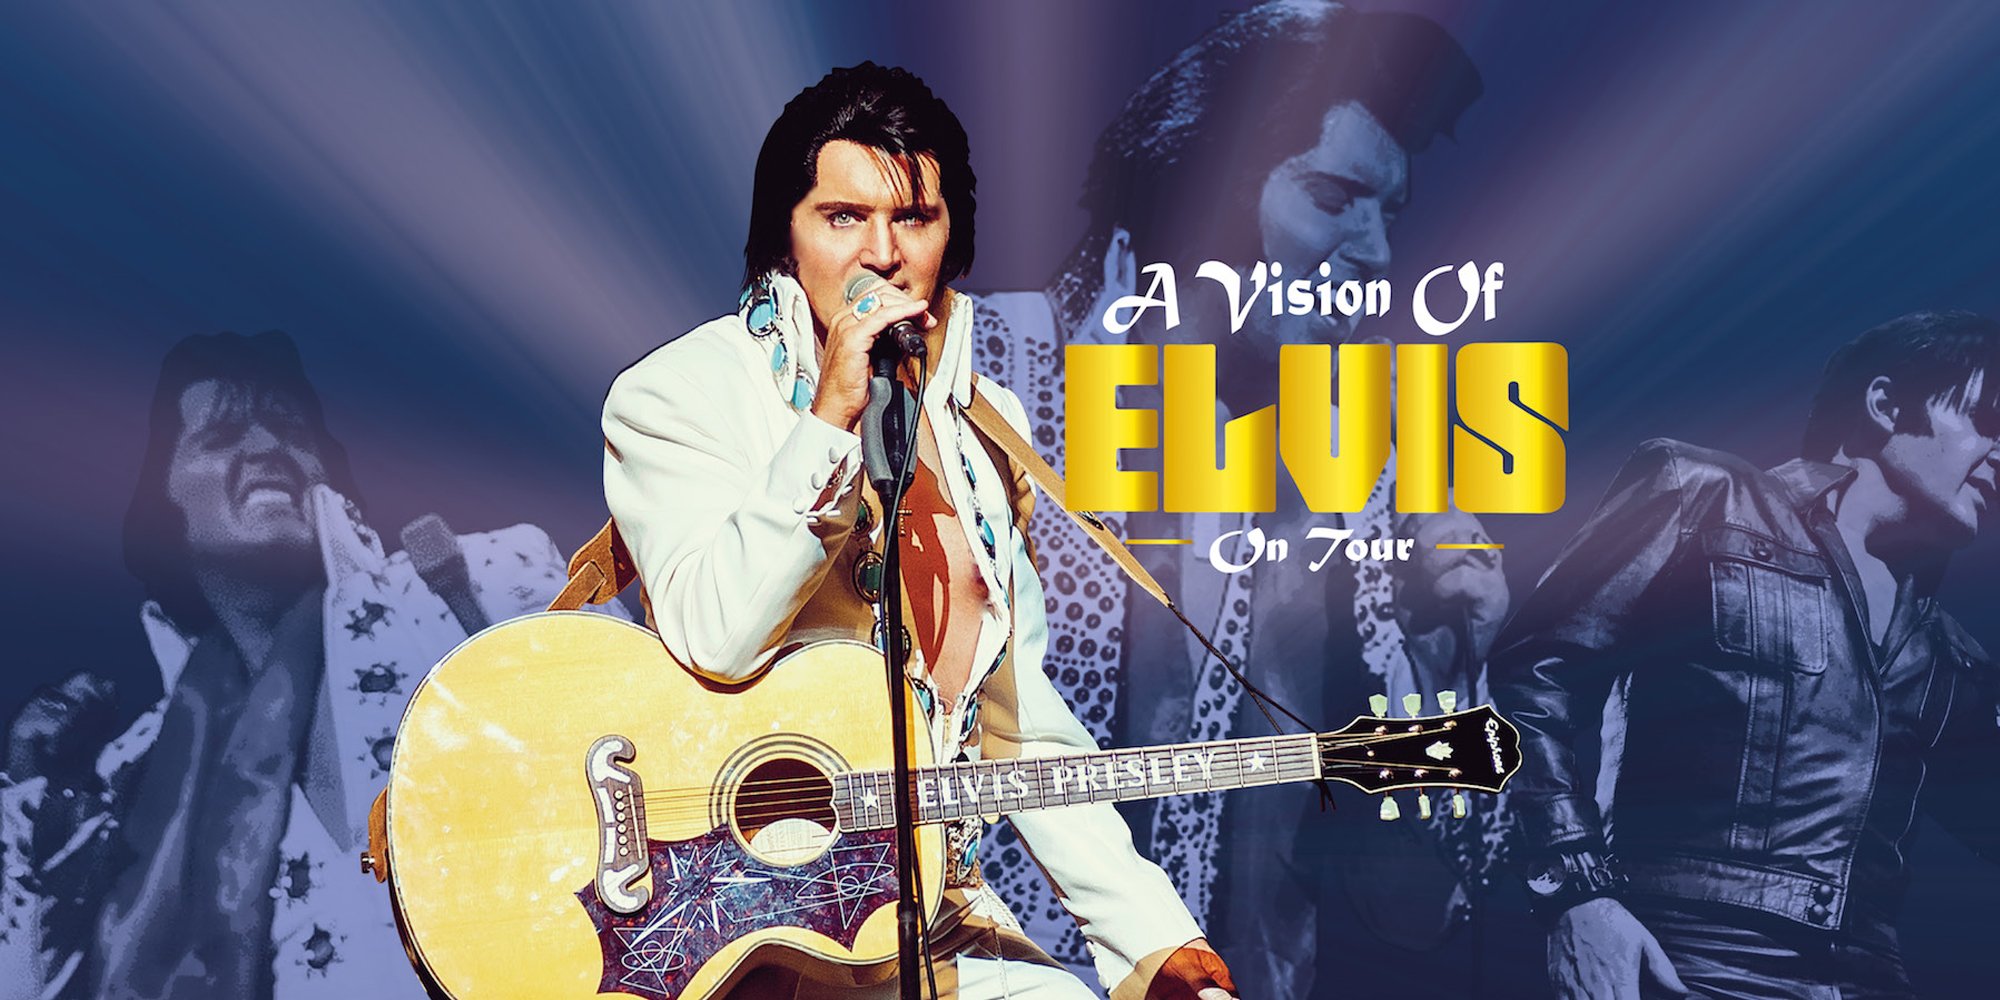 Rob Kingsley - A Vision Of ELVIS